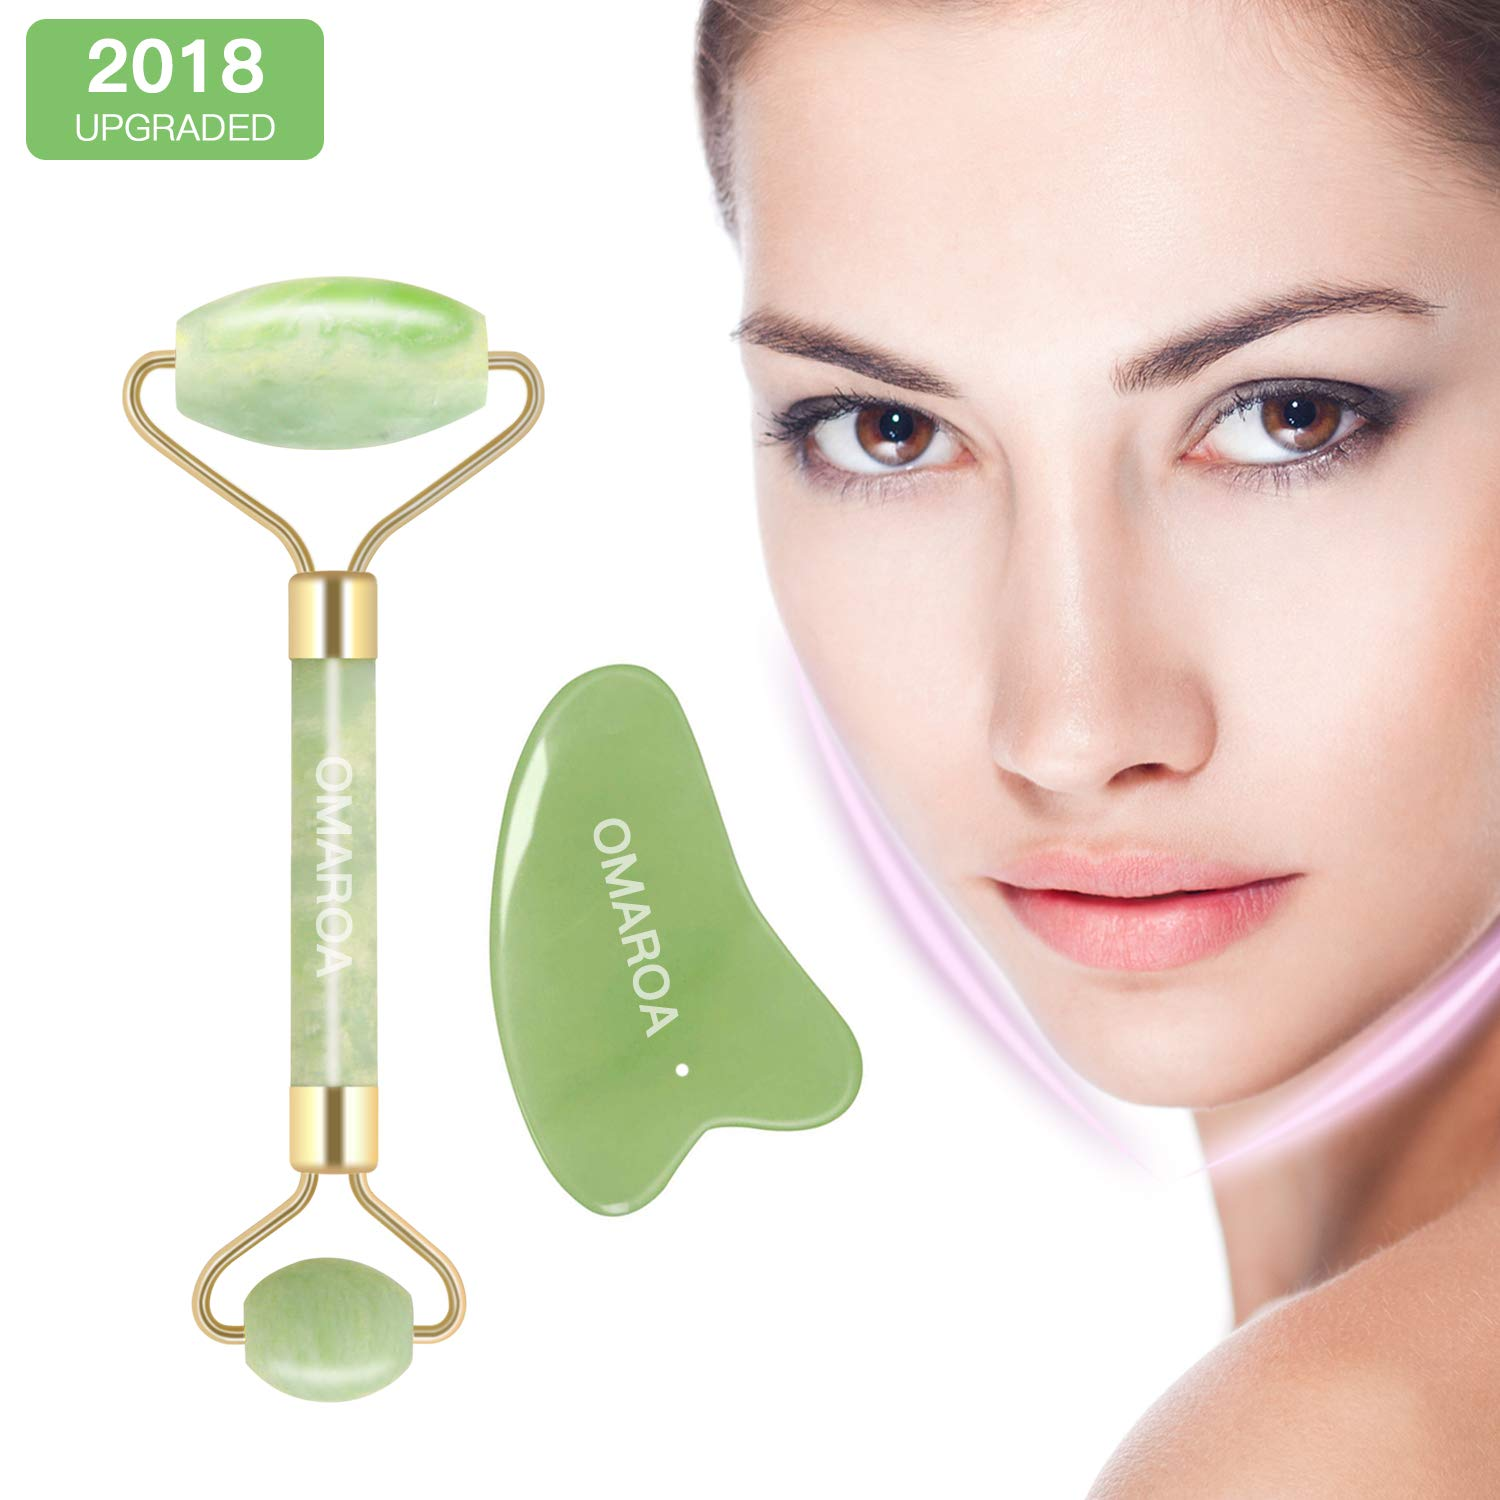 Jade Roller for the Face with Massager and Anti-Aging, Jade Roller for Face Real Jade 100% Jade, Suitable for Face Body and Eyes Treatment. OMAROA